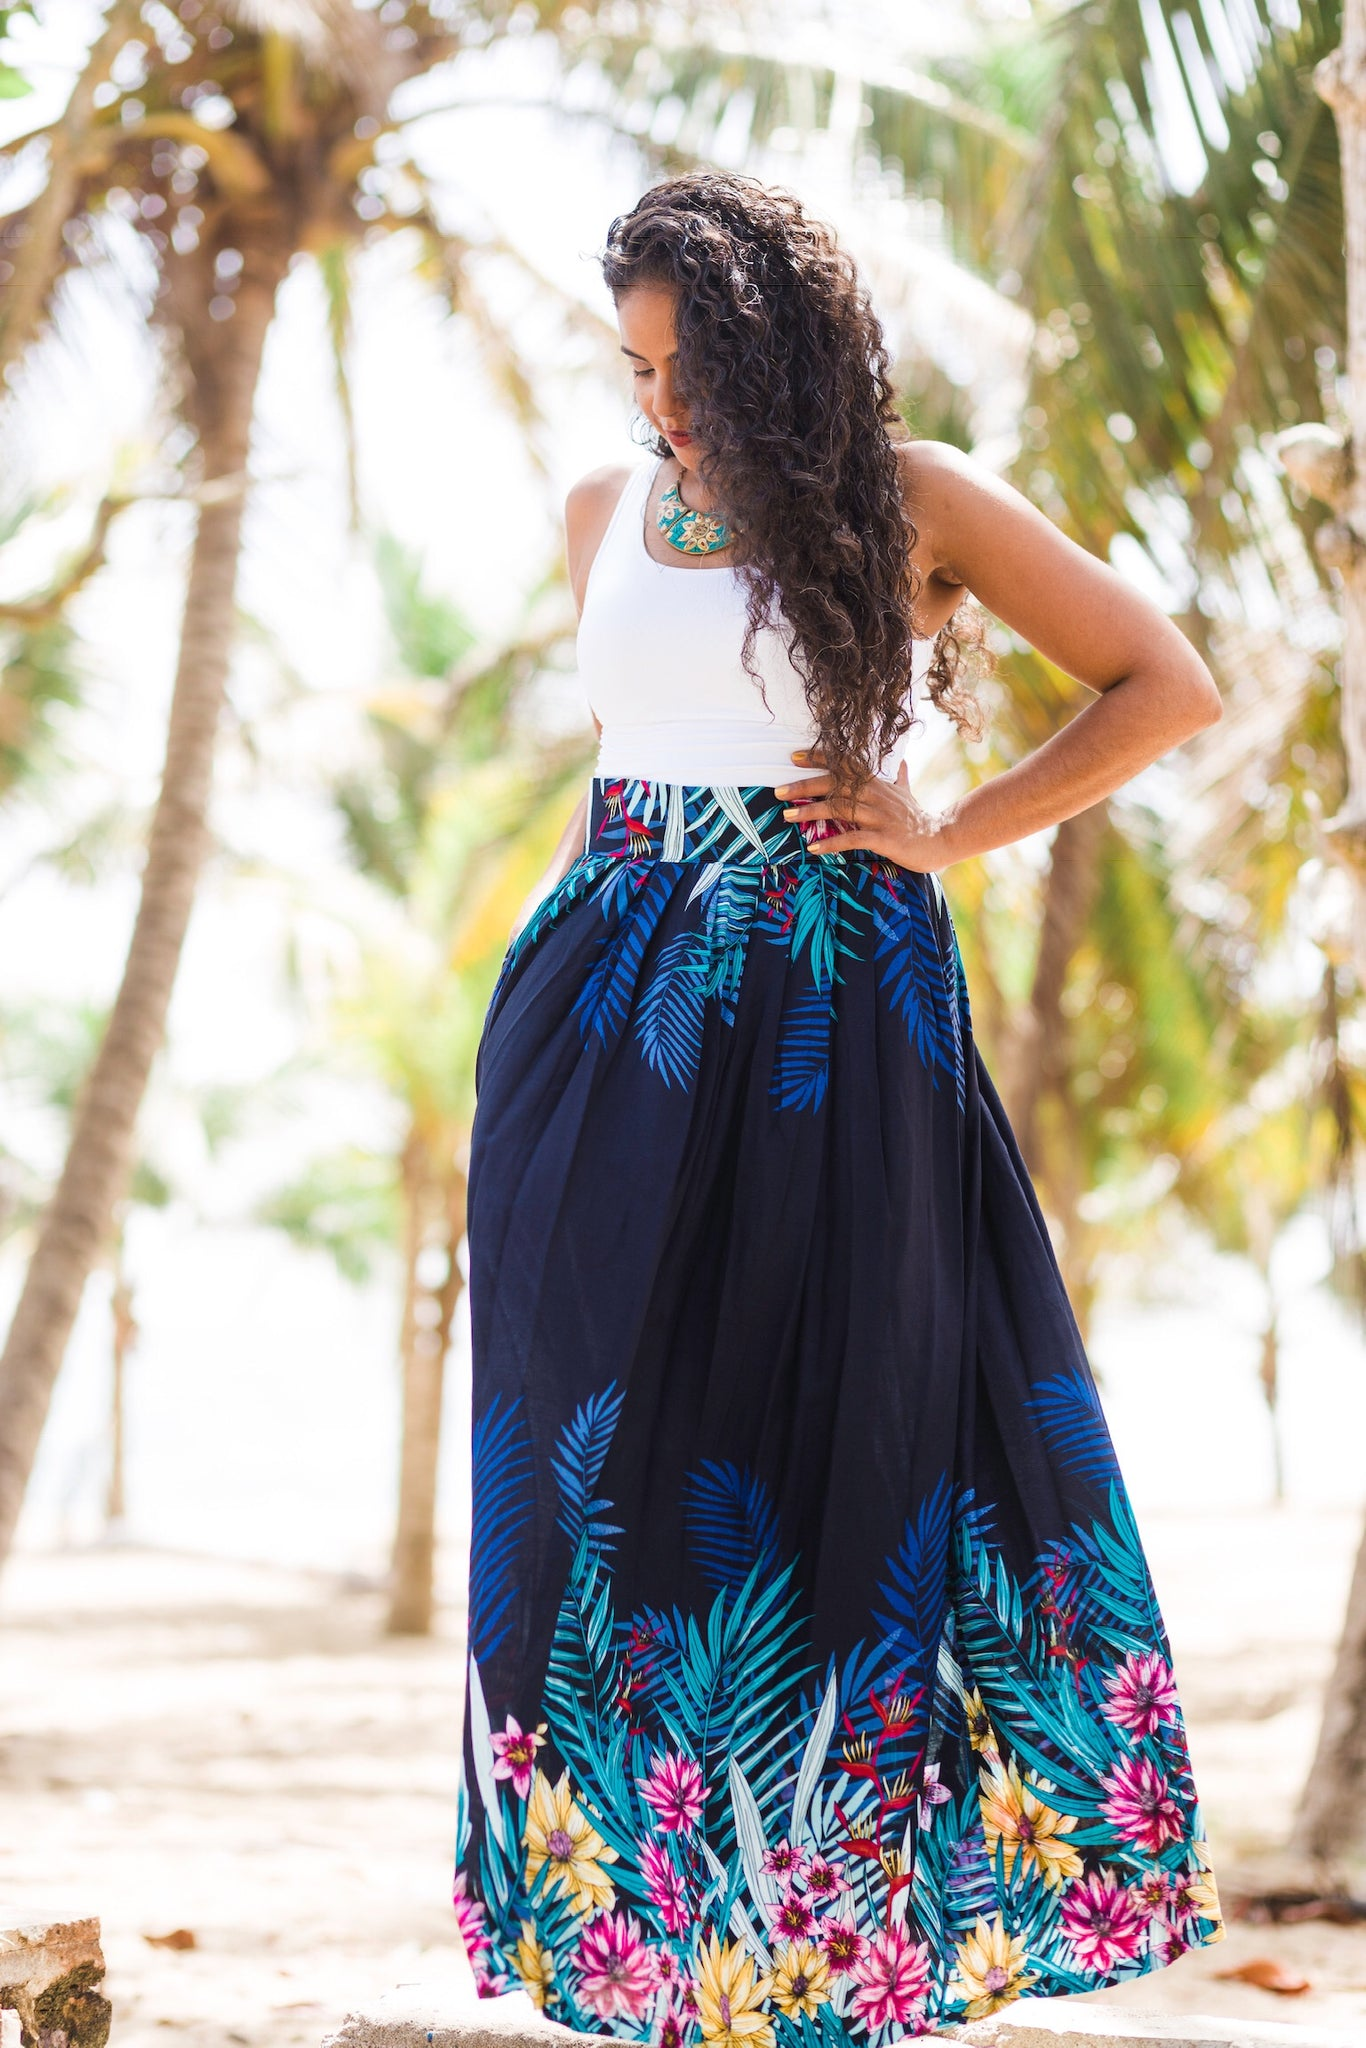 A-line Gipsy Queen Skirt - SOLD OUT - Latina Power